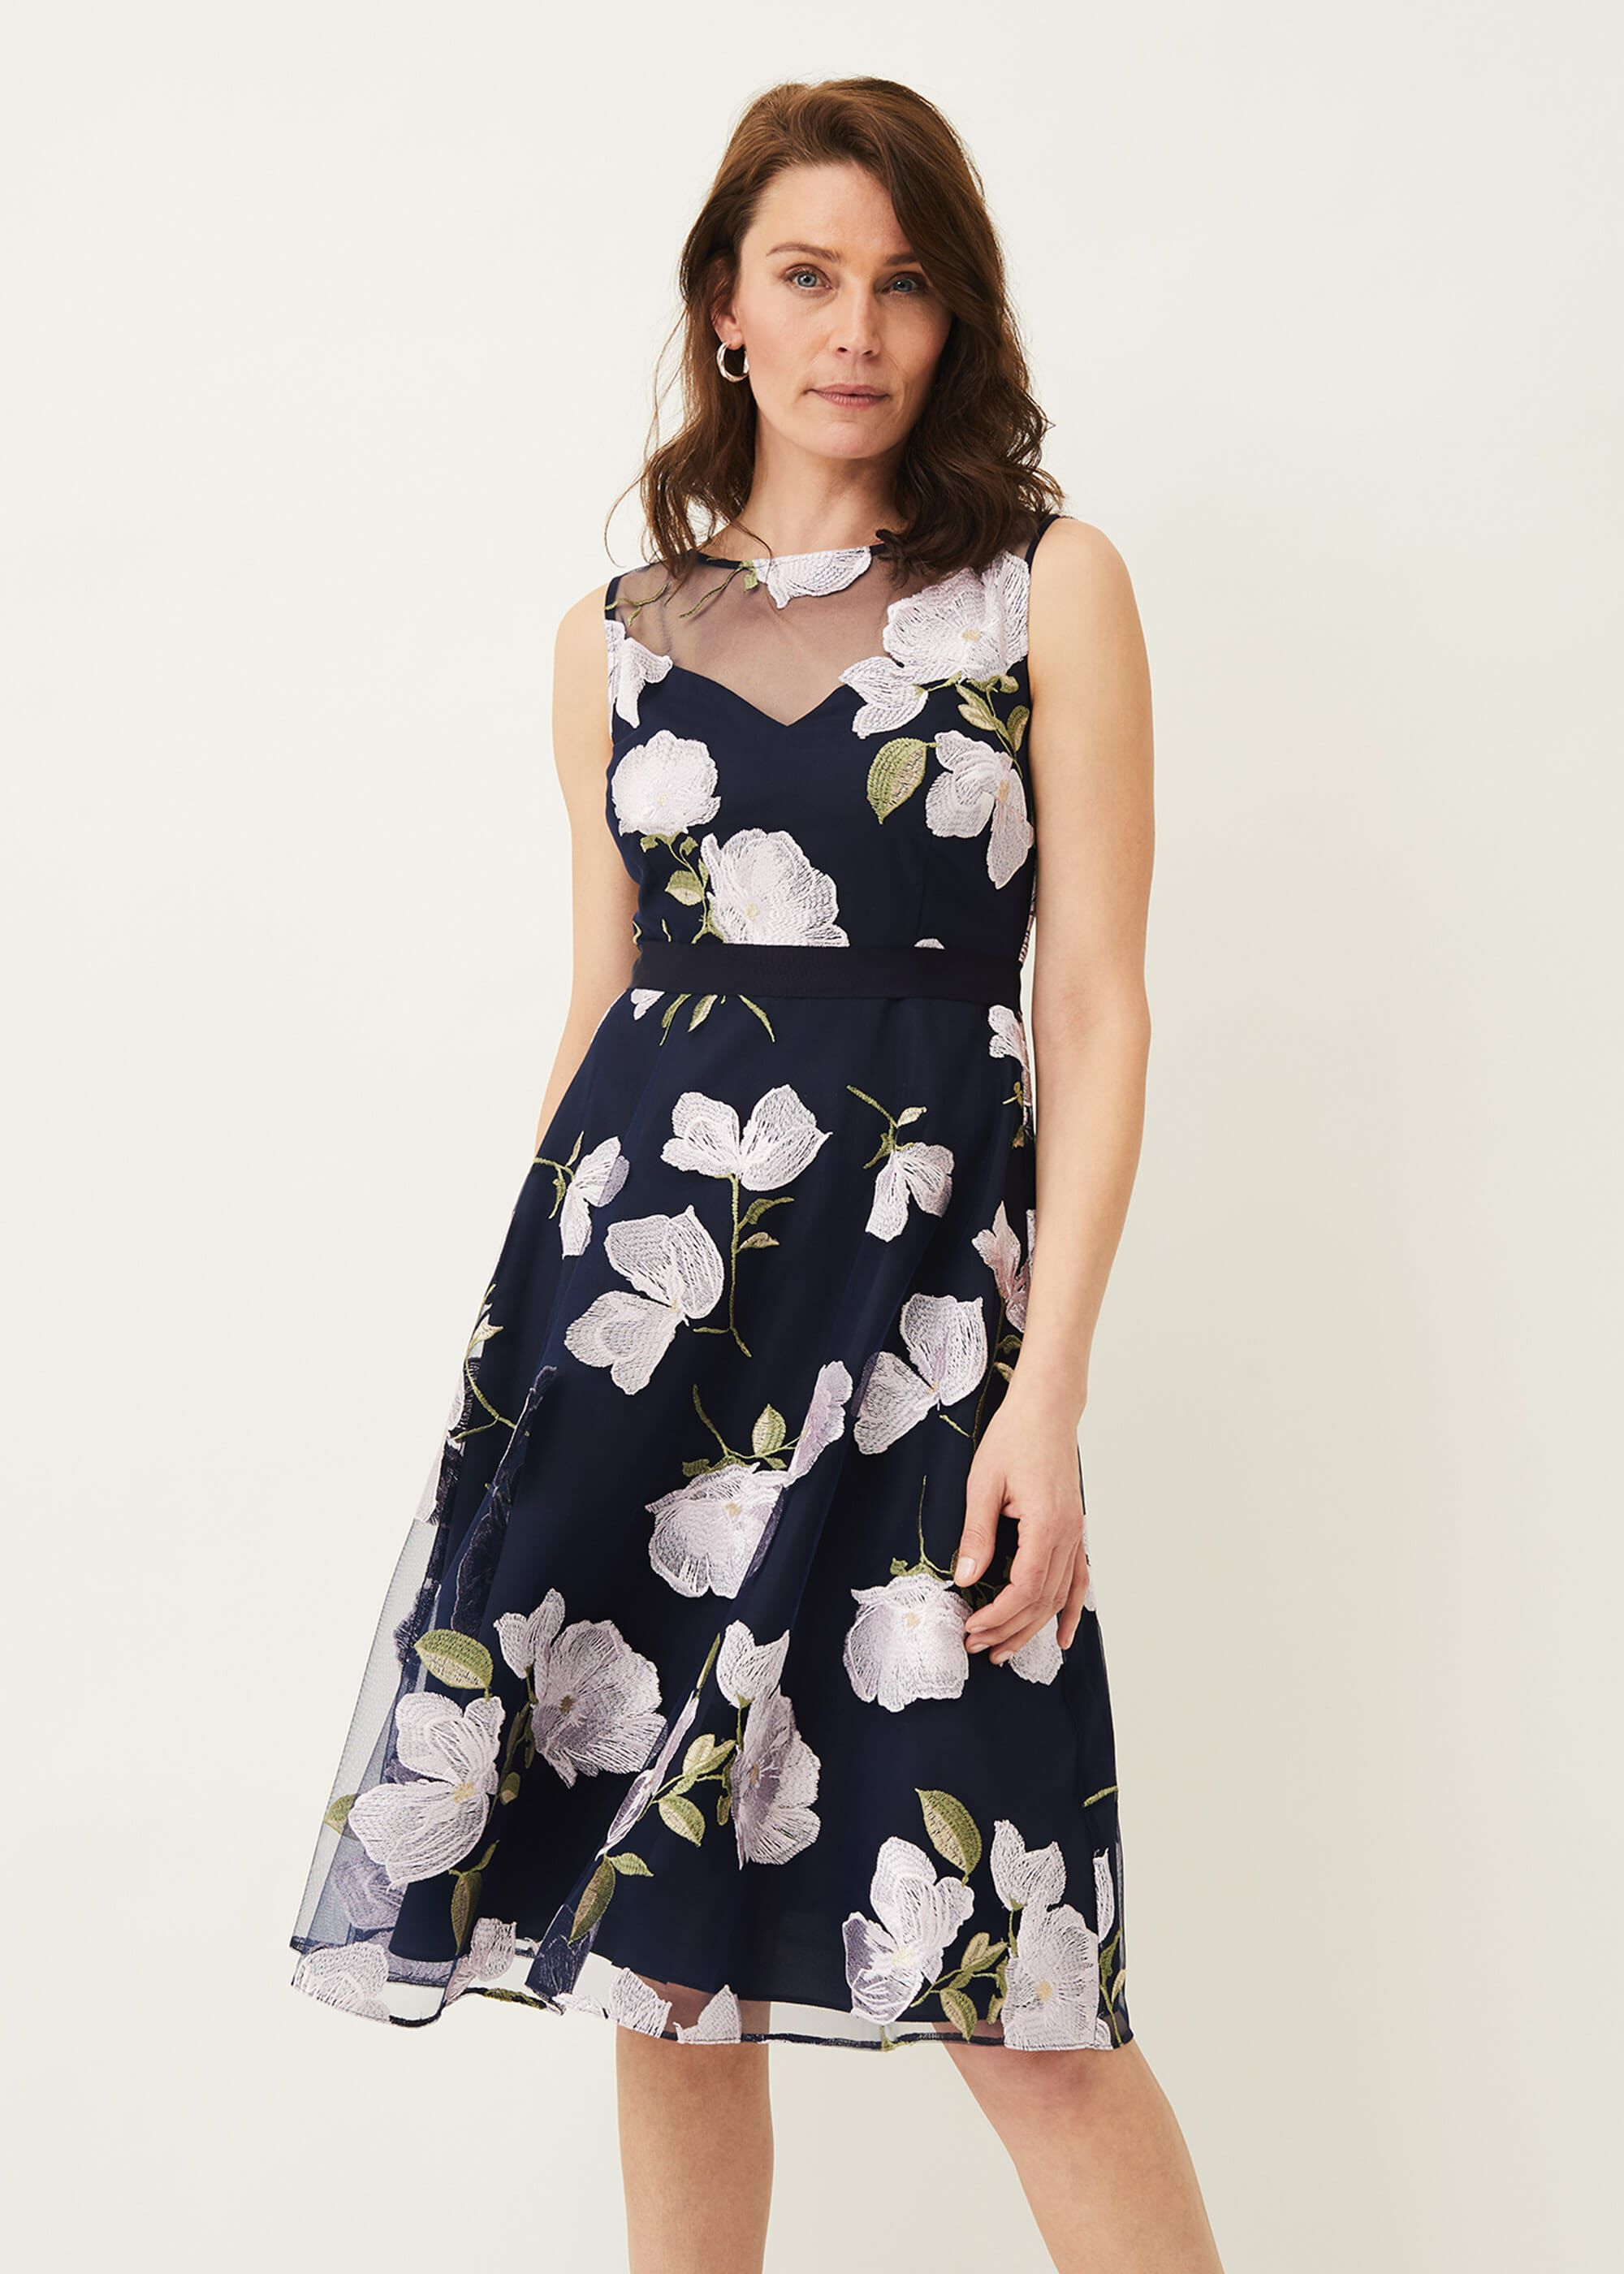 Phase Eight Charlotte Floral Embroidered Dress, Blue, Occasion Dress